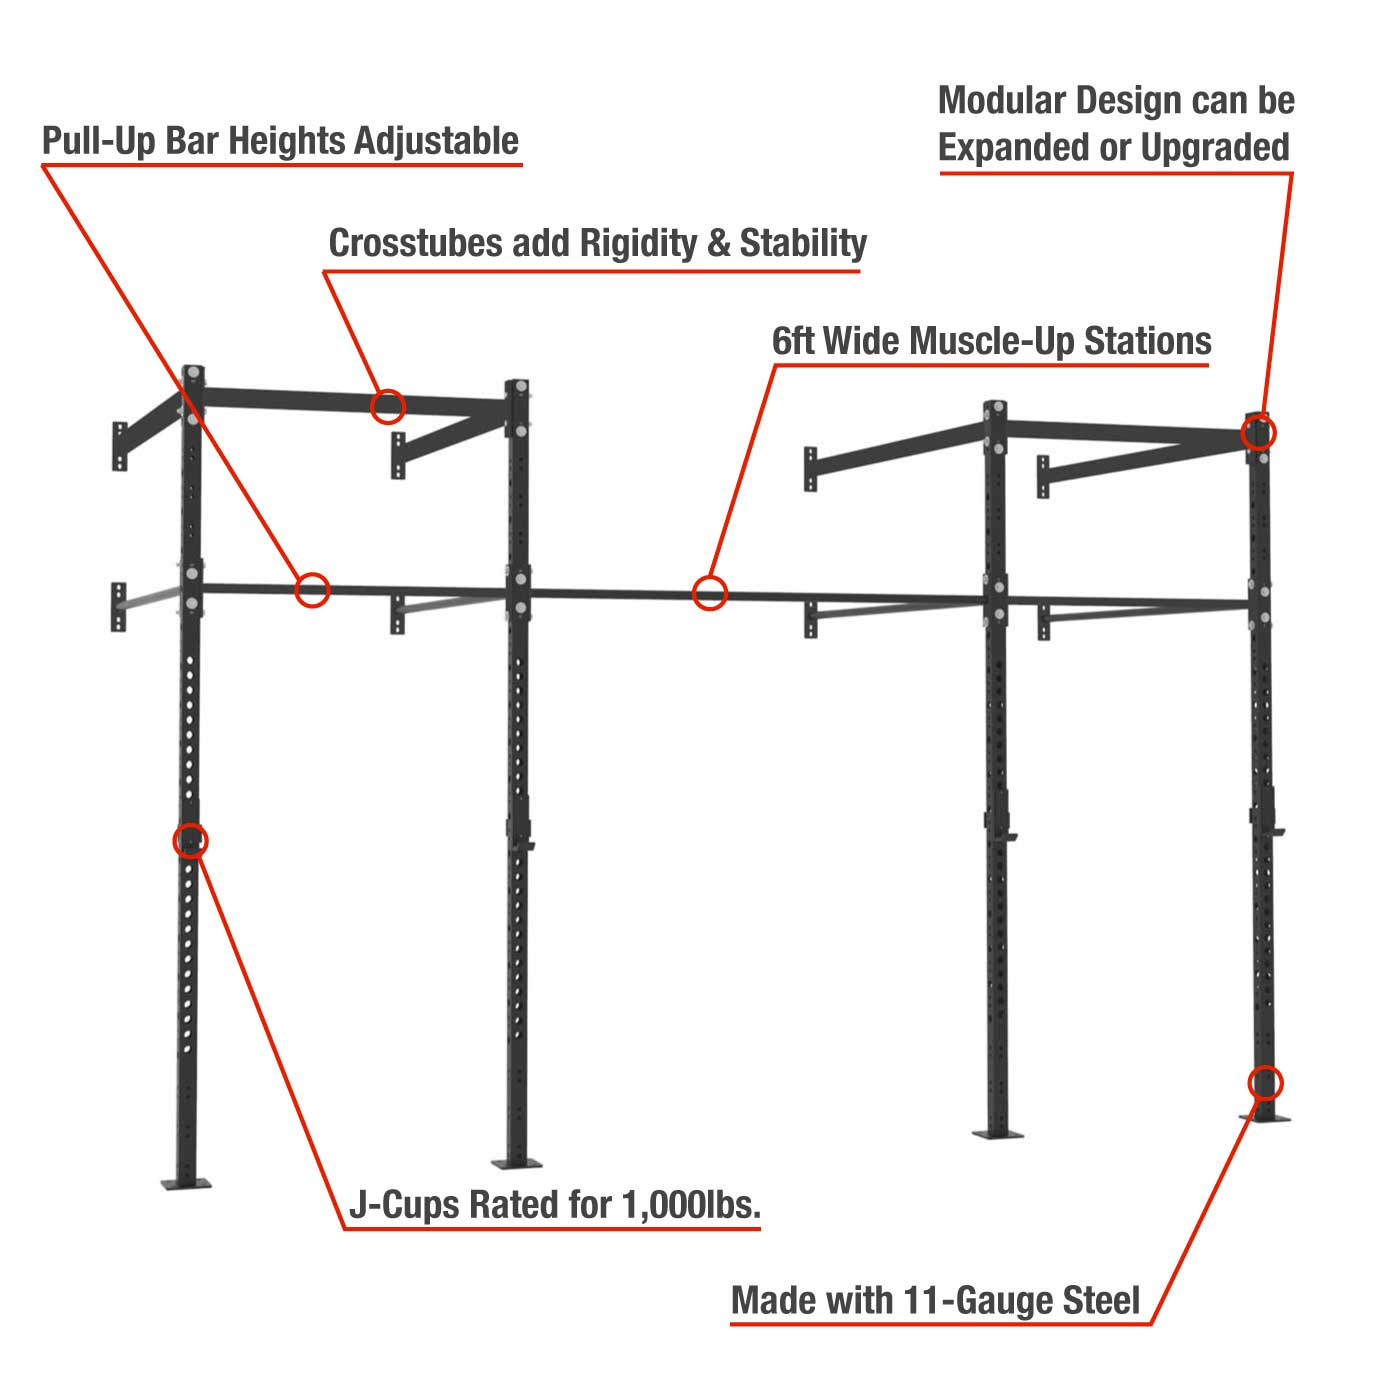 Wall-Mounted Pull-Up Rigs